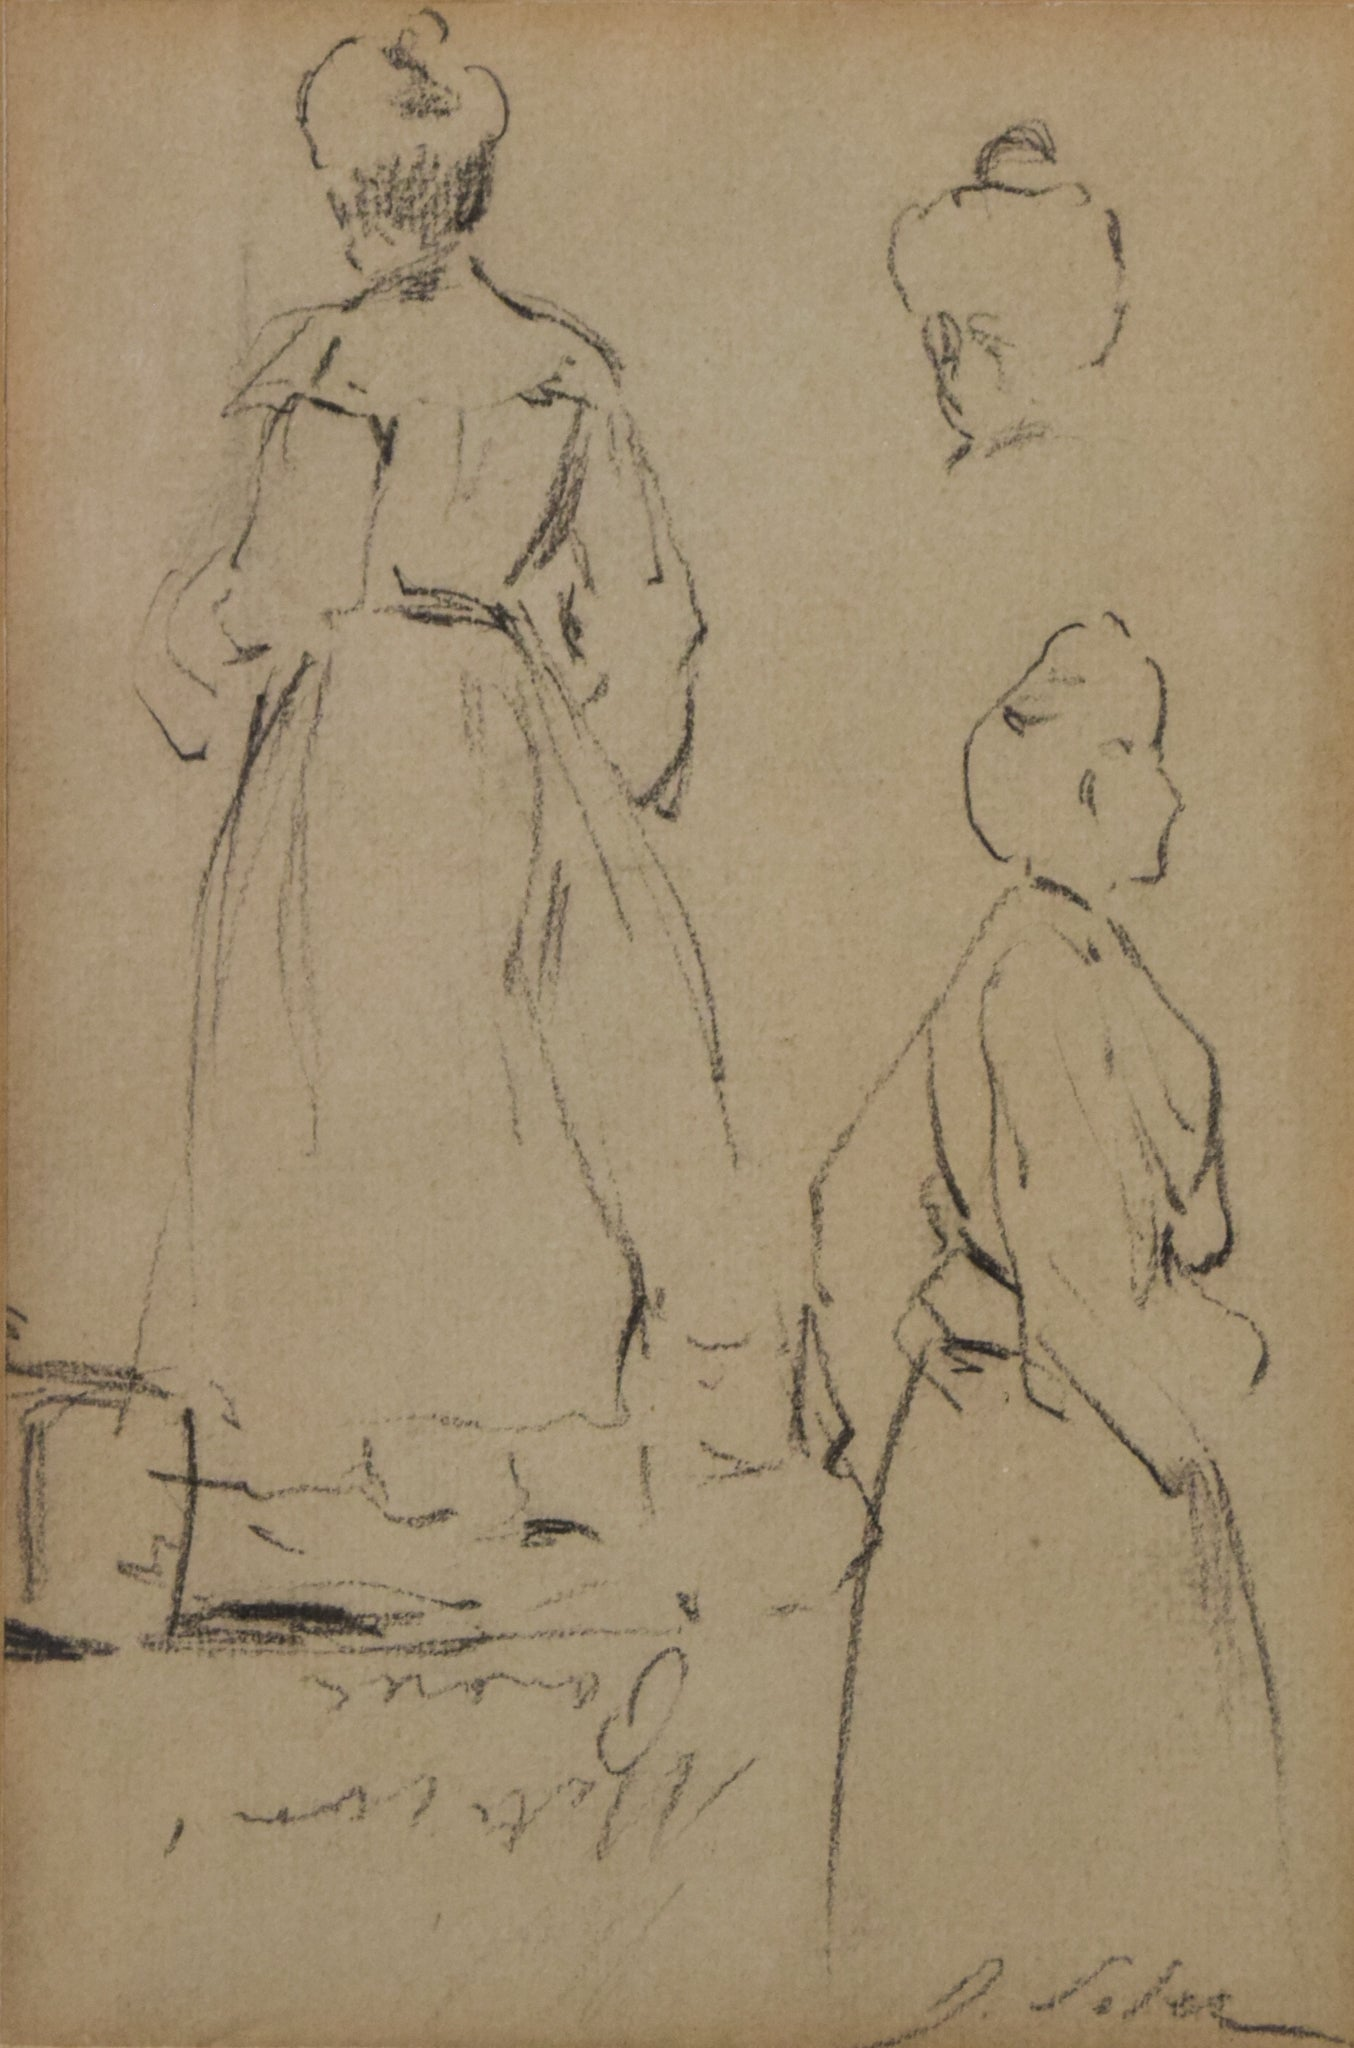 Double-sided sketches of Fin de siècle Ladies